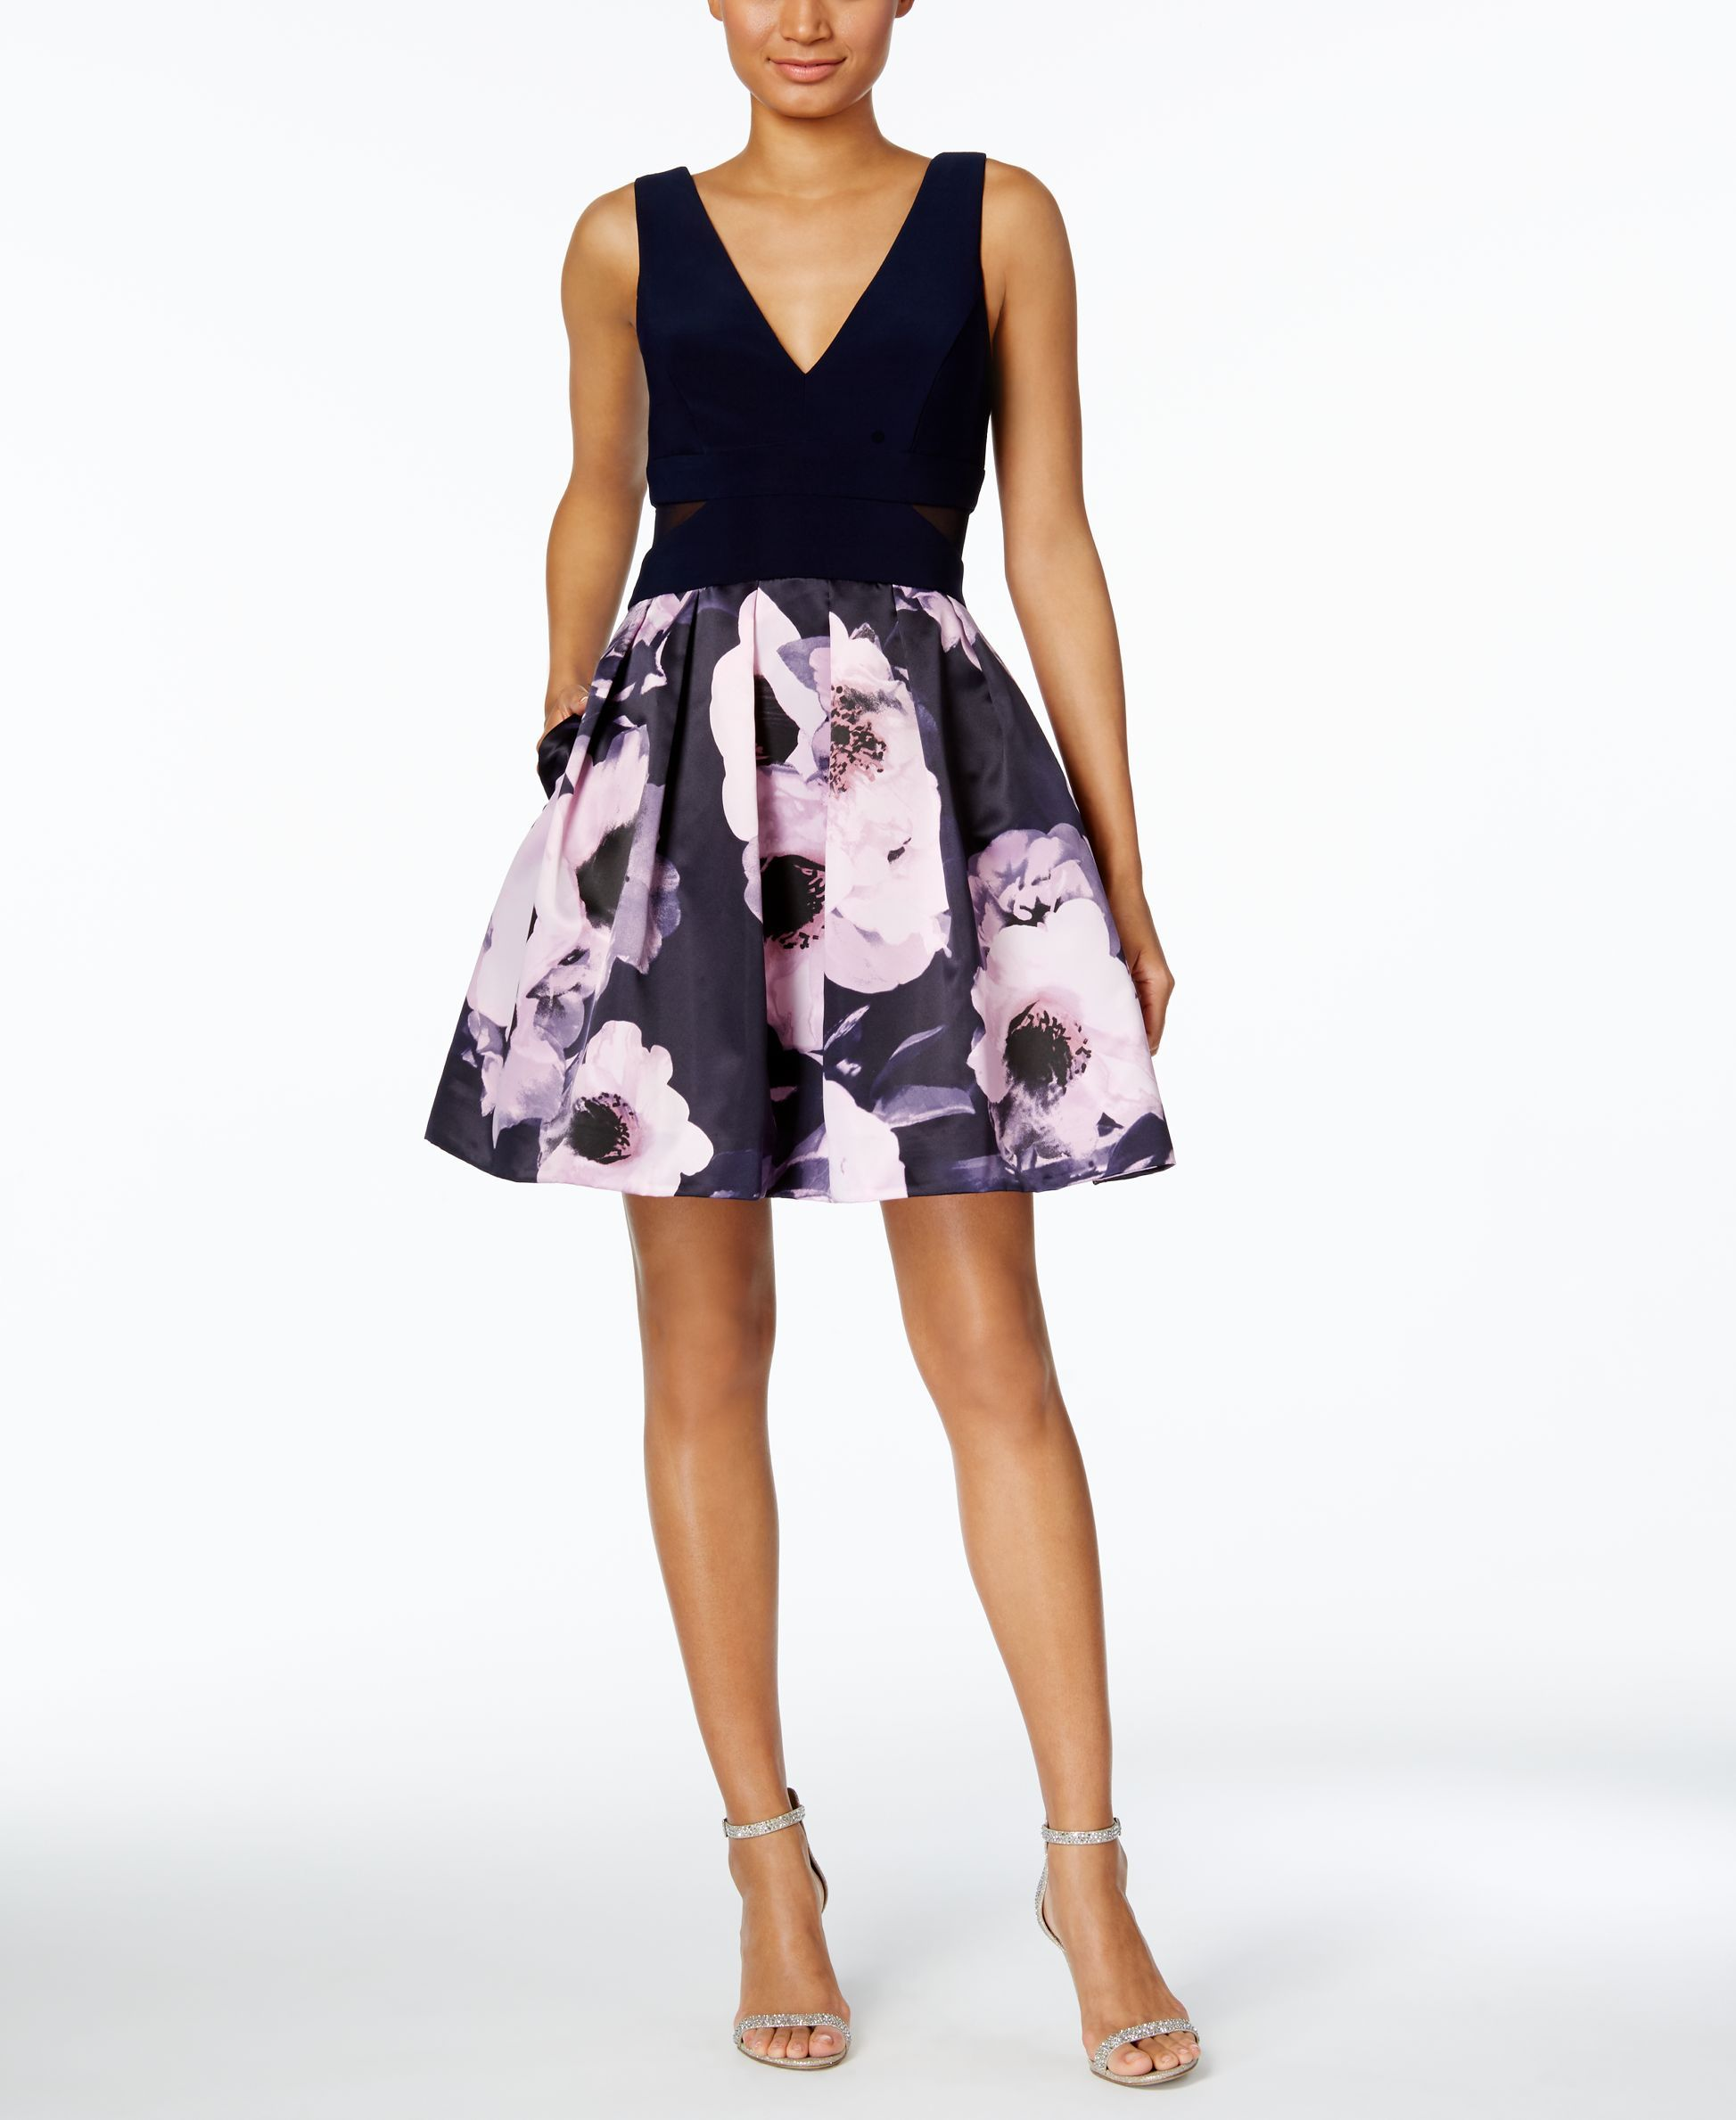 Fit and flare dress wedding  Xscape FloralPrint Fit u Flare Dress  Products  Pinterest  Products